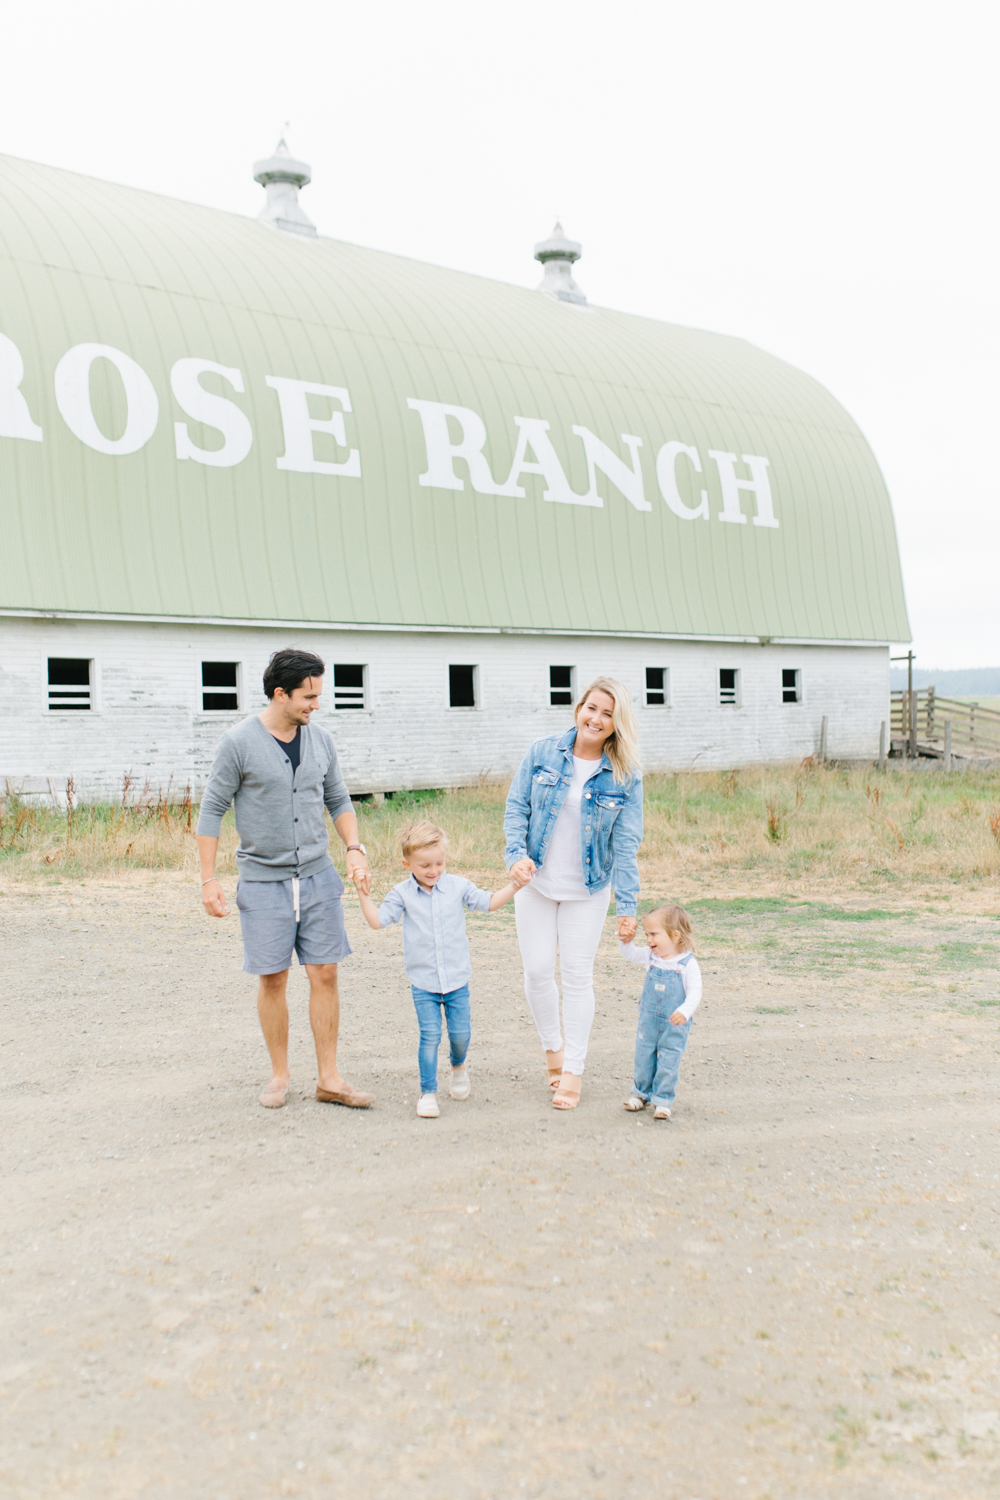 Rose Ranch Family Photo Session | Monika Hibbs Family Session in South Bend, Washington | What to Wear for Family Pictures | Pacific Northwest Family Session with Emma Rose Company-57.jpg